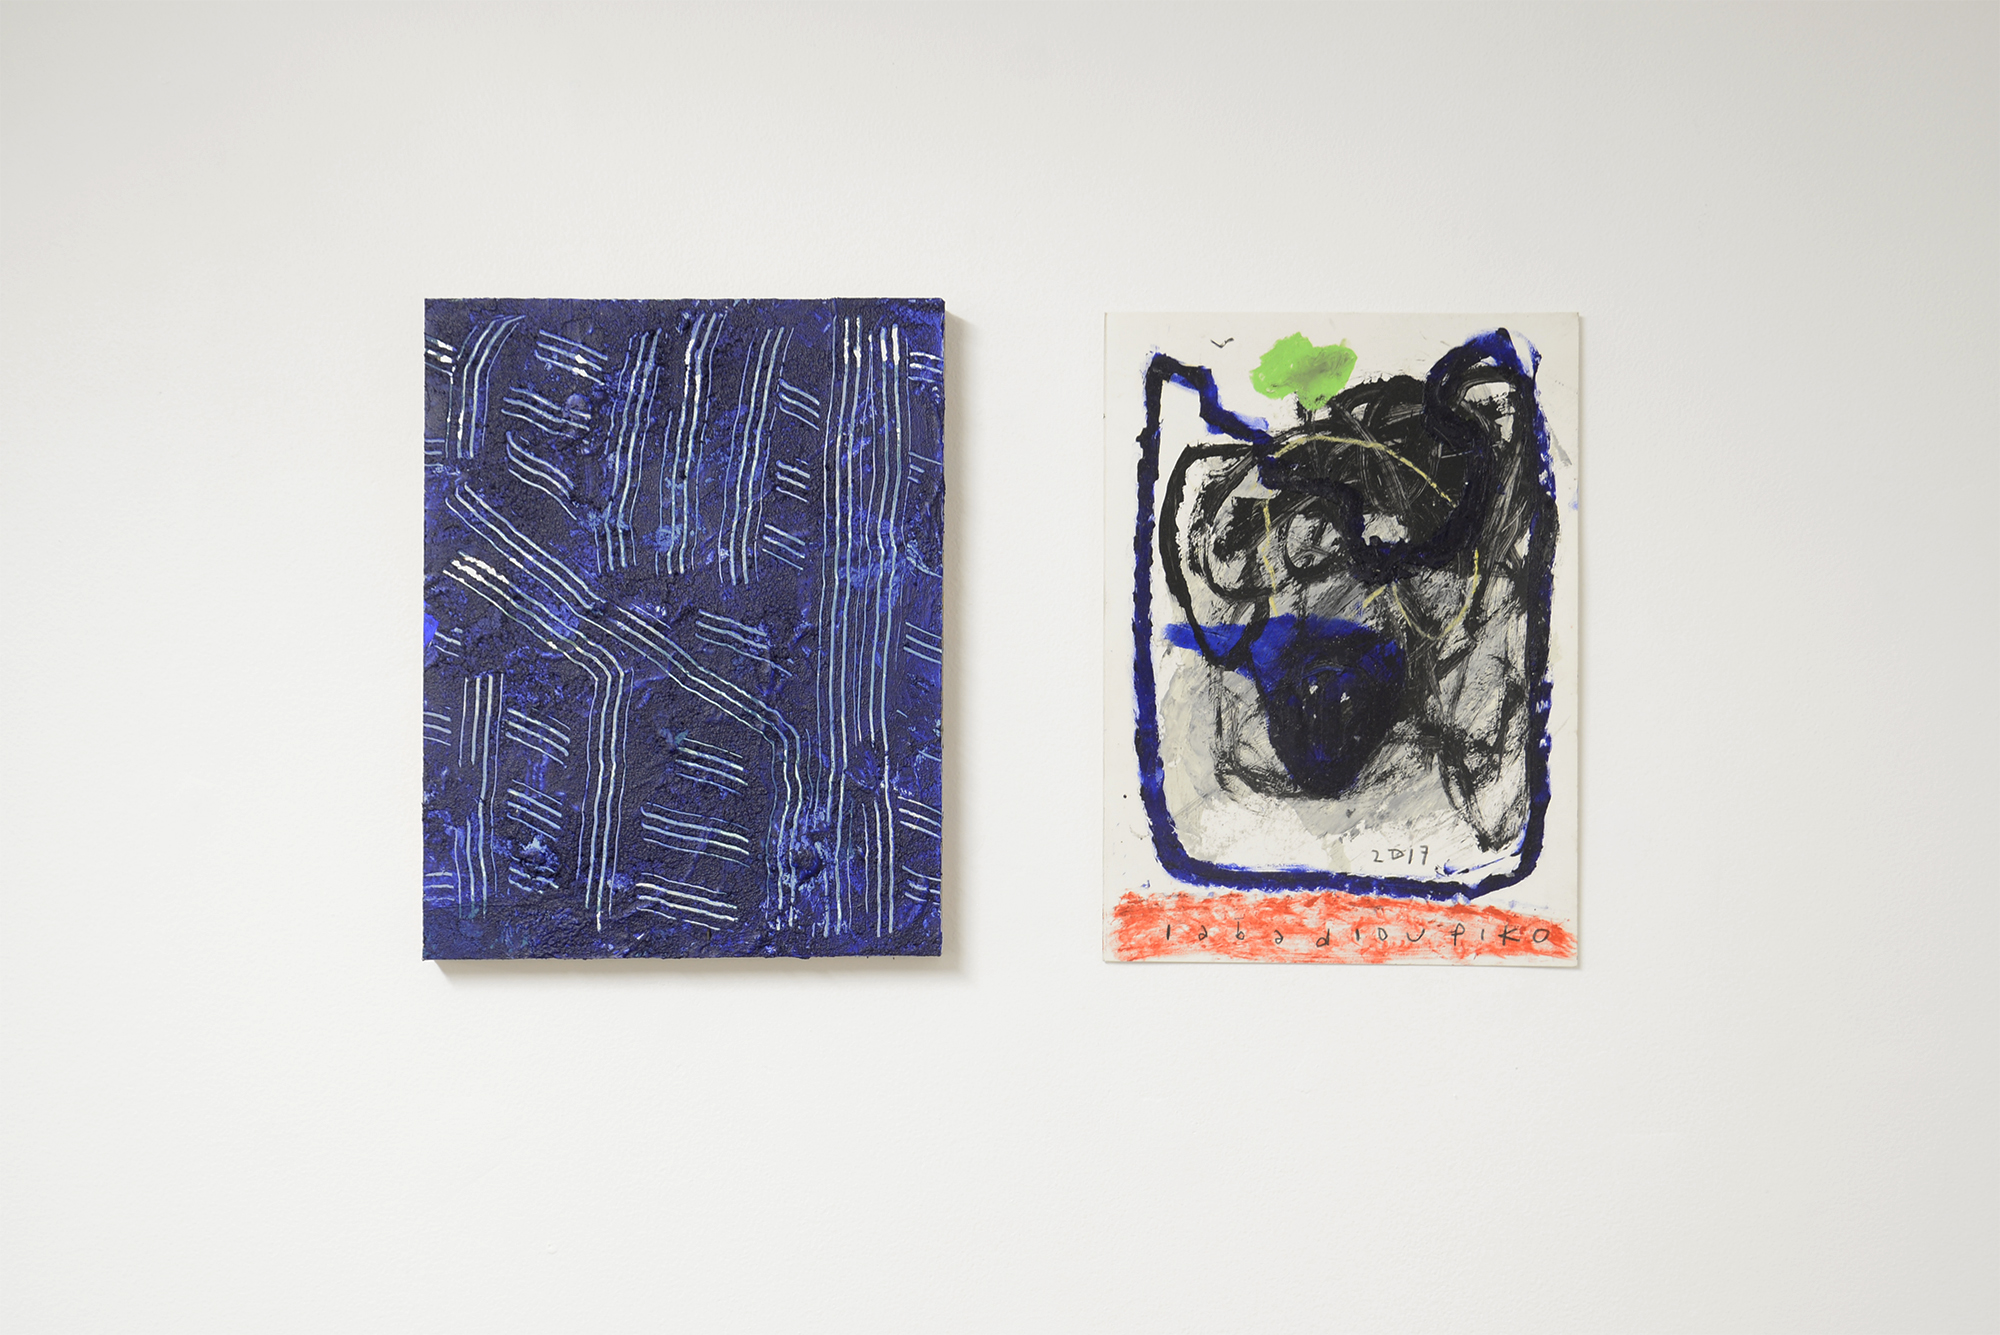 Left: Loki Groves  Free face  2018 acrylic on plywood  Right: Iabadiou Piko  Untitled  2017 acrylic, oil stick, oil pastel, pencil on paper